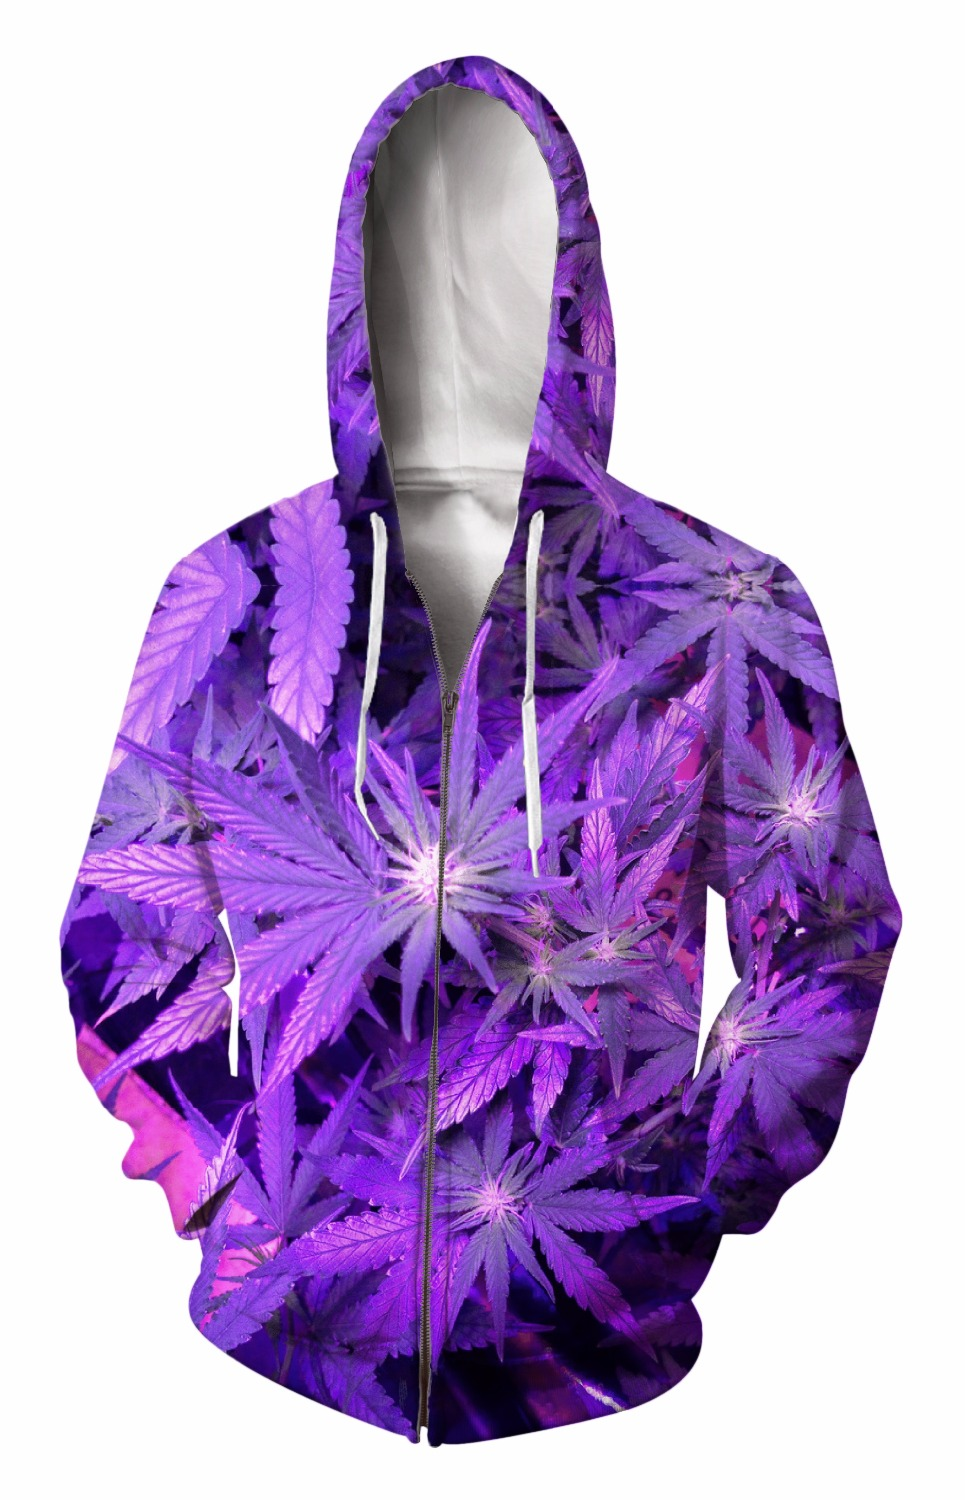 Zip-Up Hoodie 3d Print Soft Leaves Clothing Women Men Tops Hooded Casual Zipper Sweatshirt Outfits Coats Sweat factory outlet